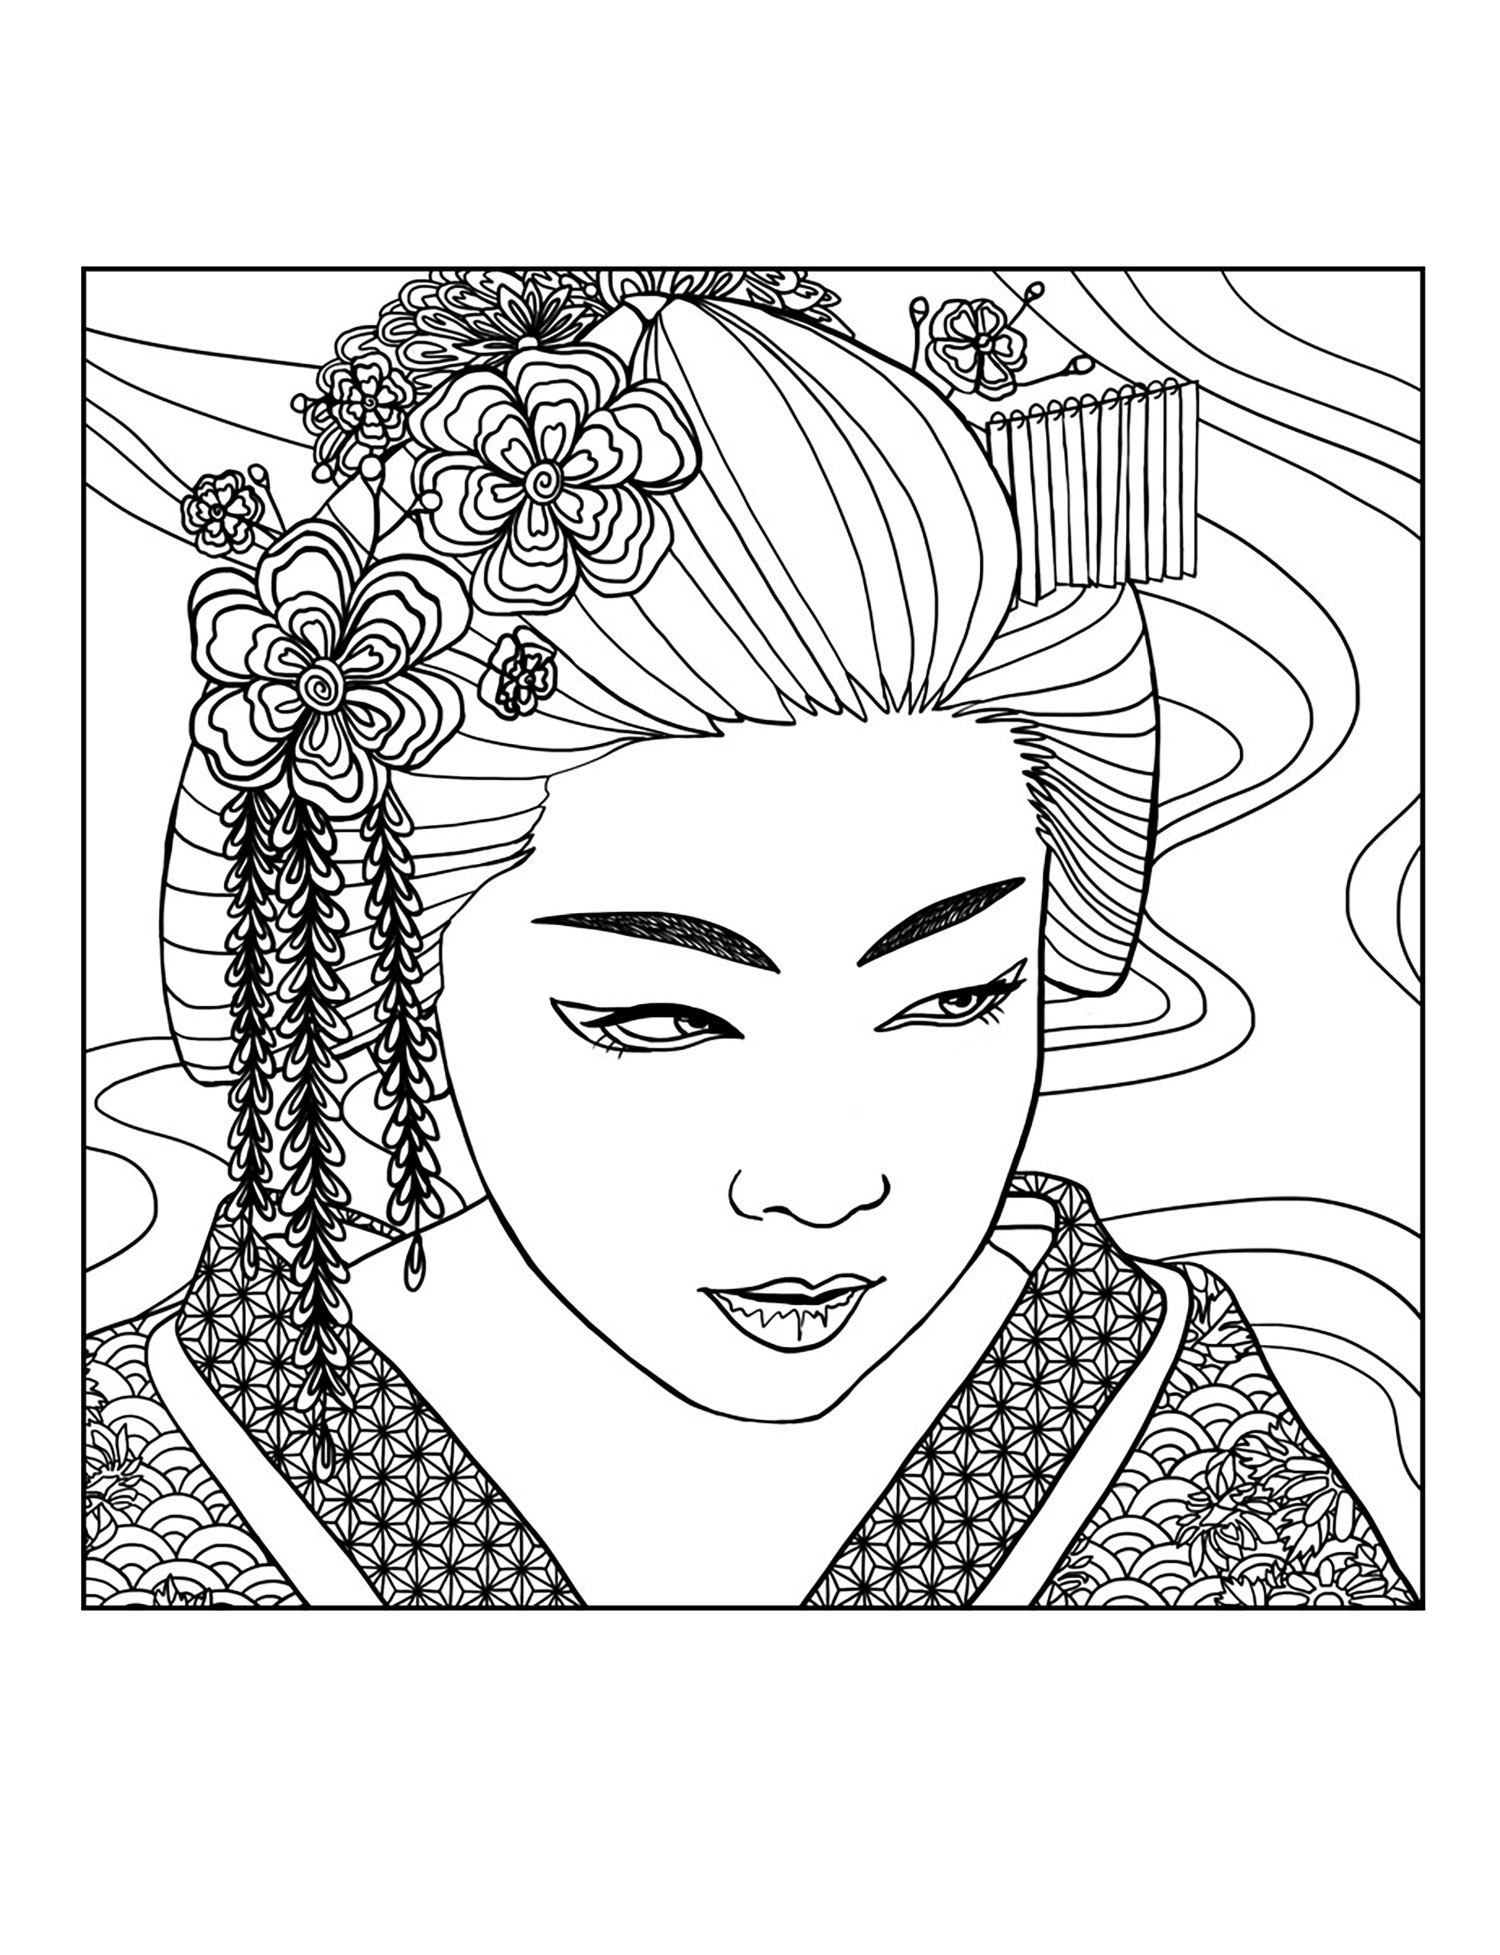 japanese coloring sheets japan coloring pages to download and print for free japanese coloring sheets